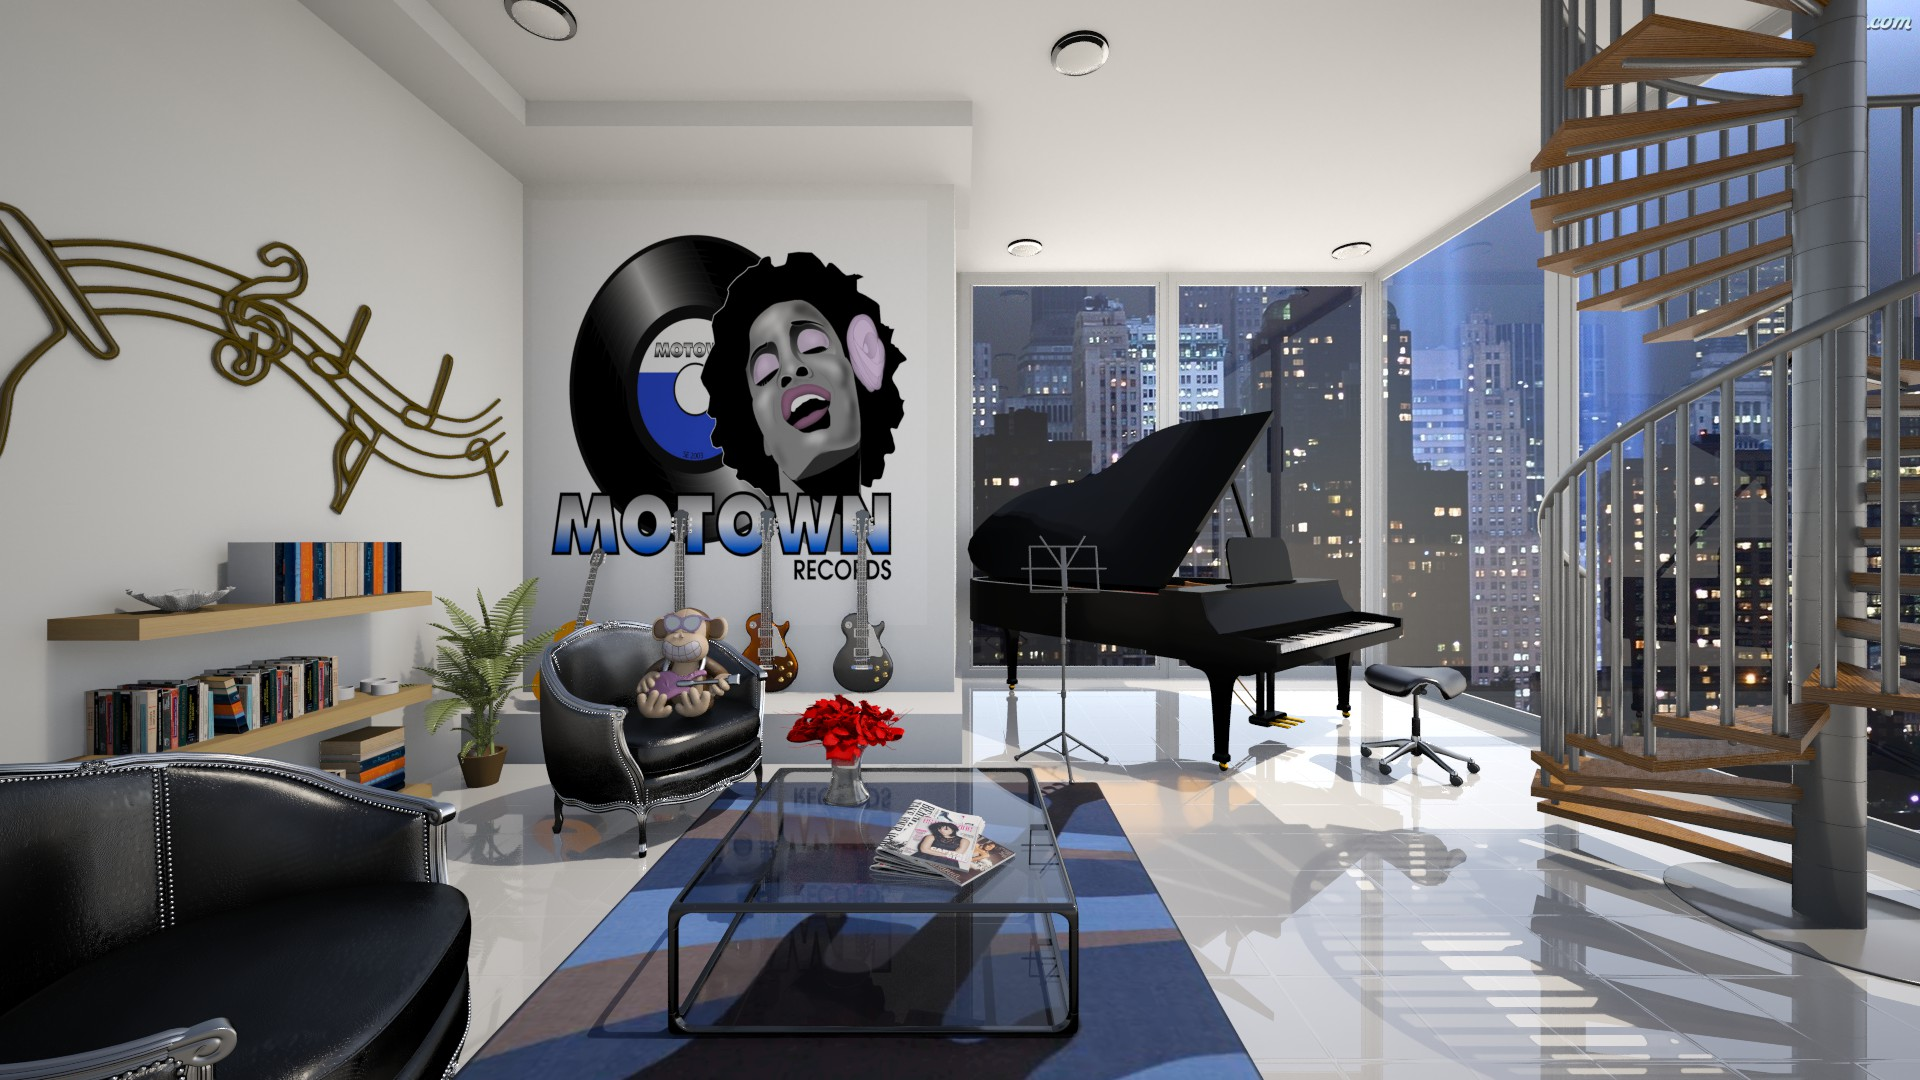 motown - by neide oliveira